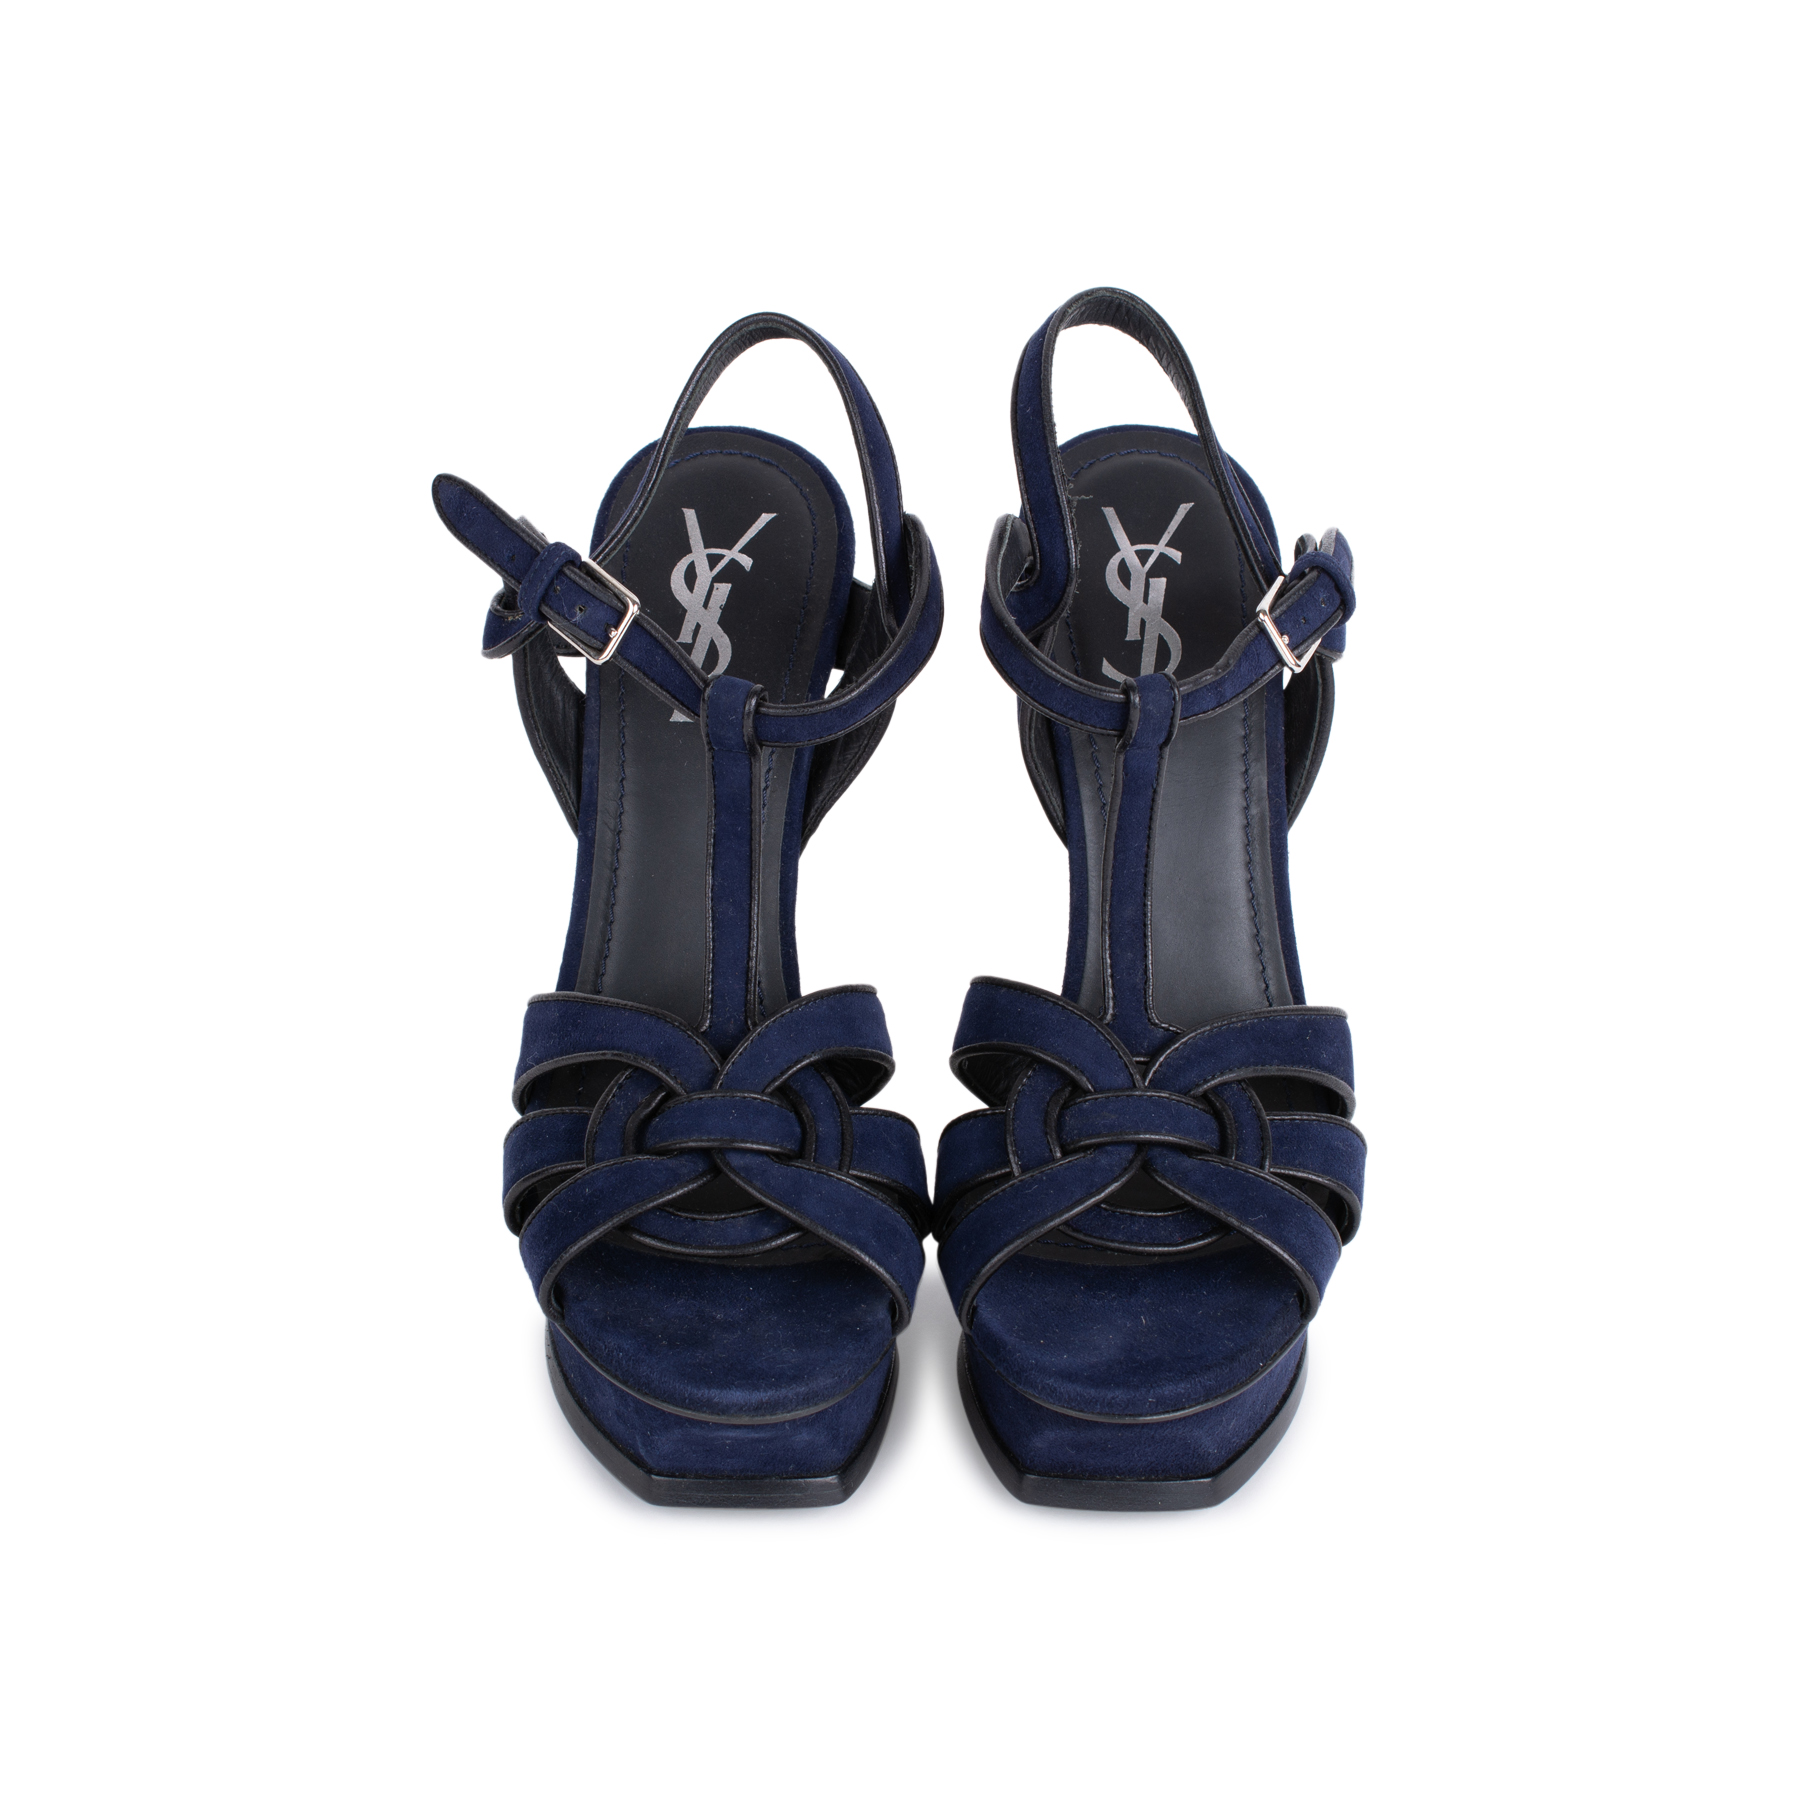 cfc4d534fe Authentic Second Hand Yves Saint Laurent Tribute Suede Sandals  (PSS-544-00007) - THE FIFTH COLLECTION